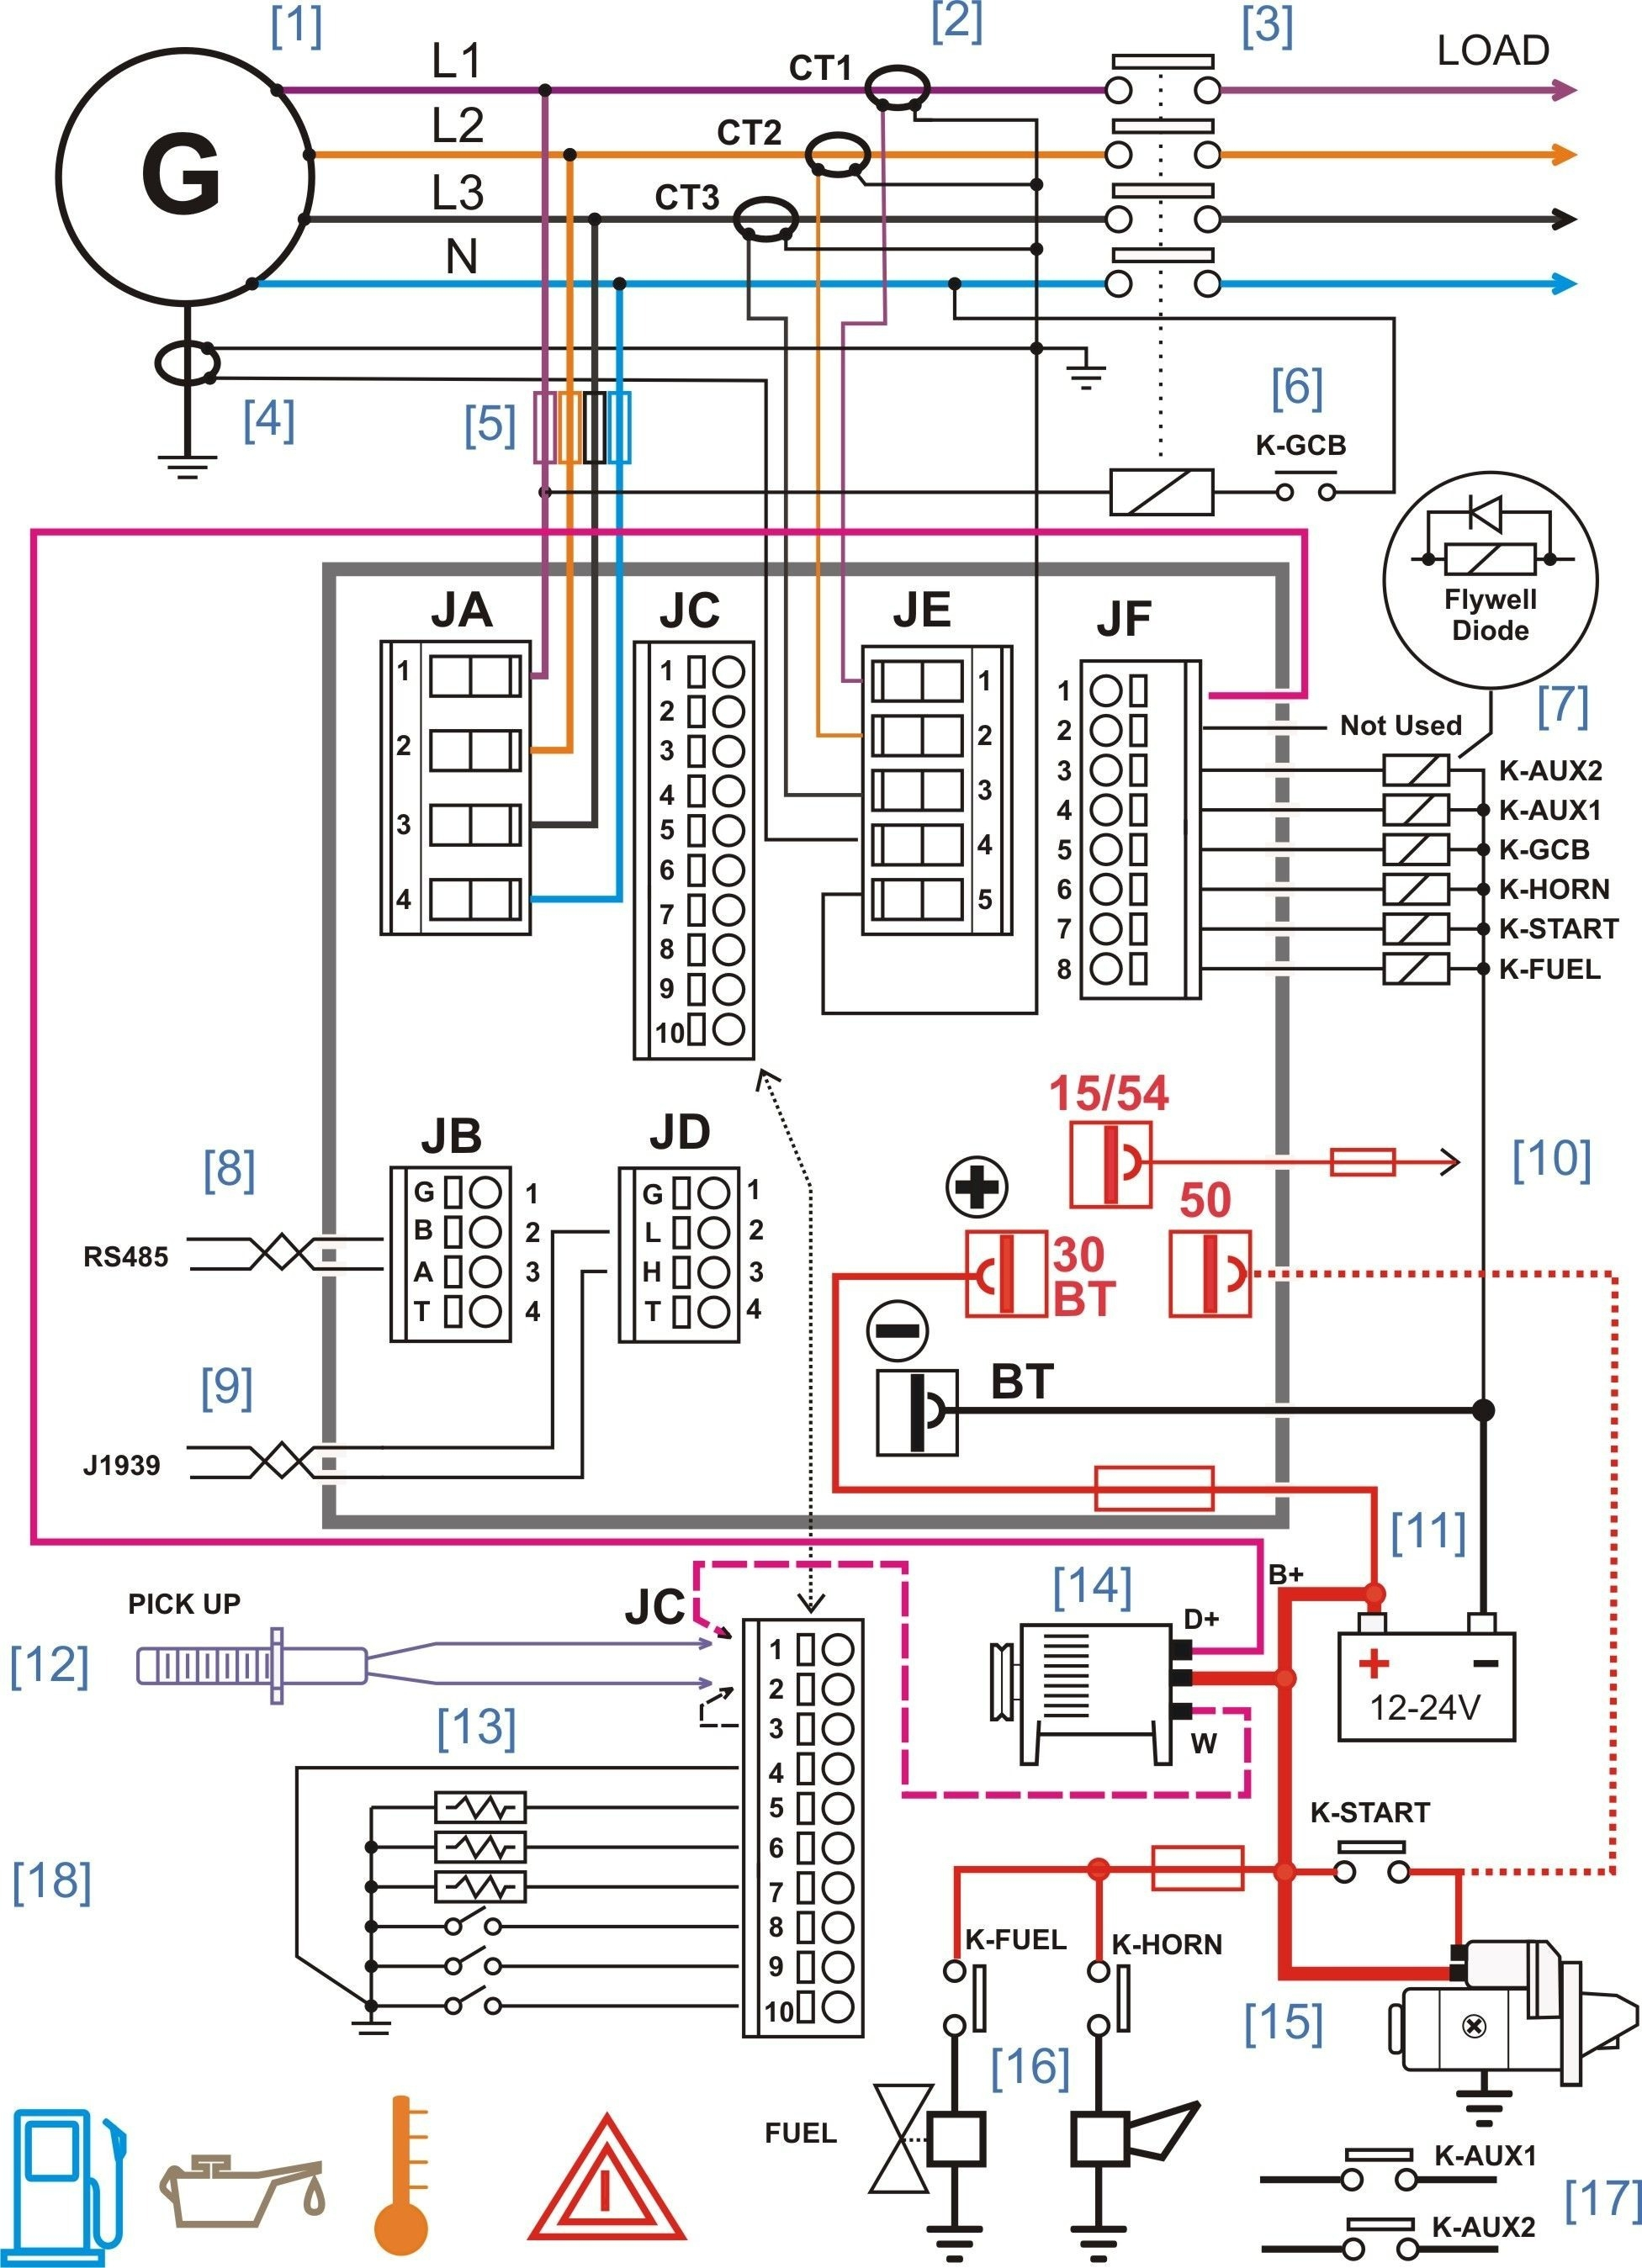 home theater wiring diagram software Download-Wiring Diagram Detail Name home theater wiring diagram software 10-s